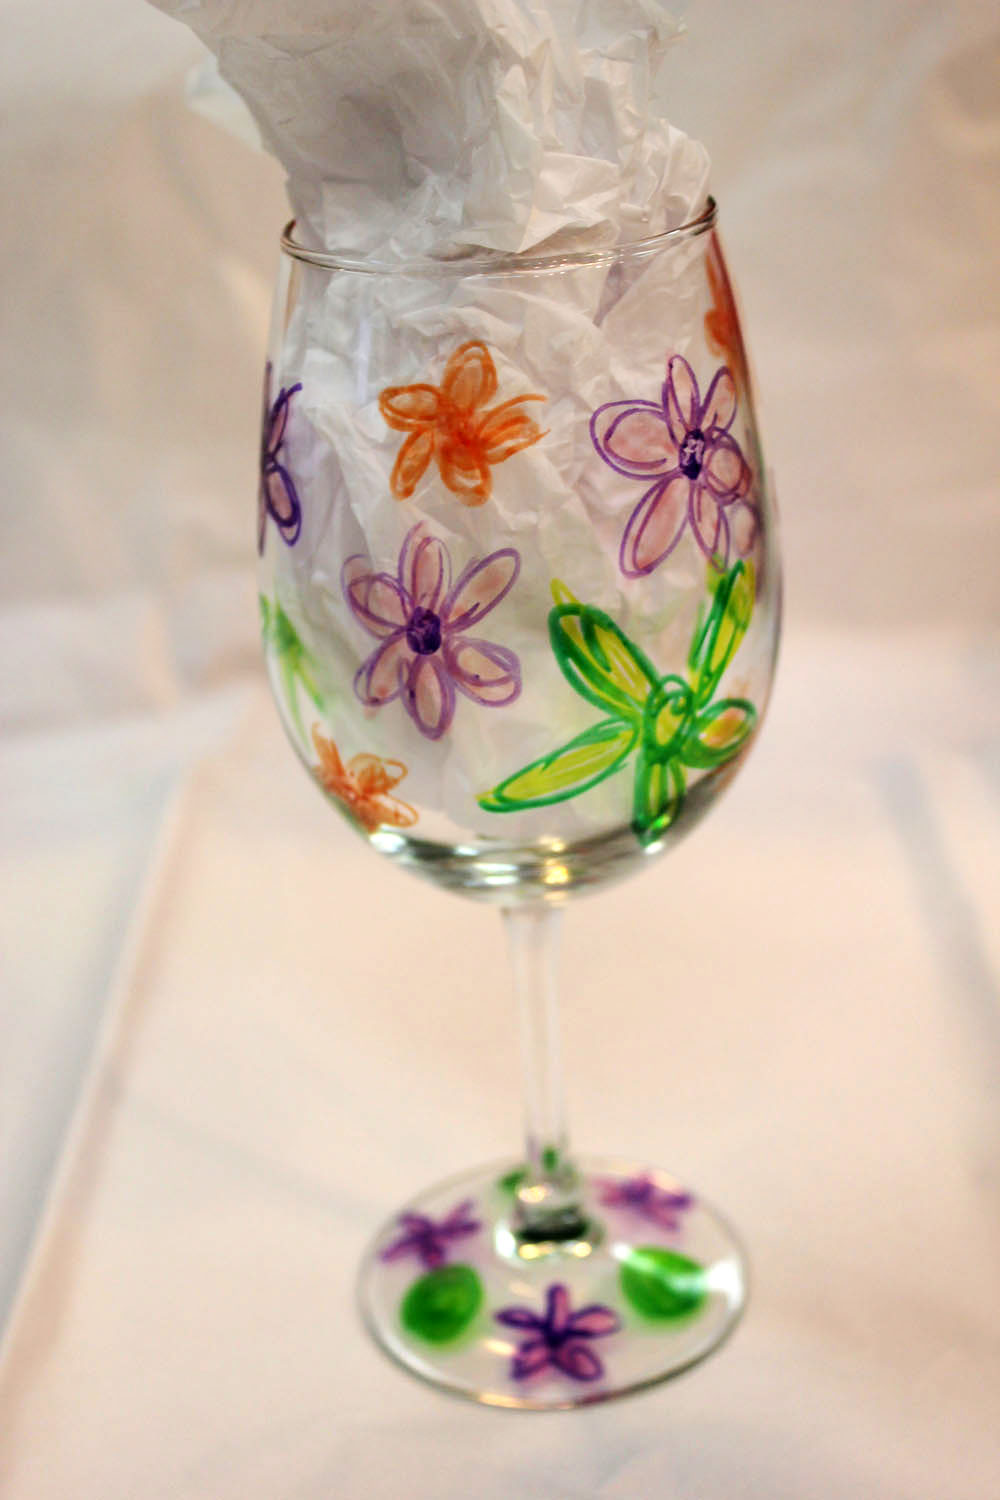 handpainted-wine-glass-colorful-flowers-art-by-tjm-studio-img_4685.jpg